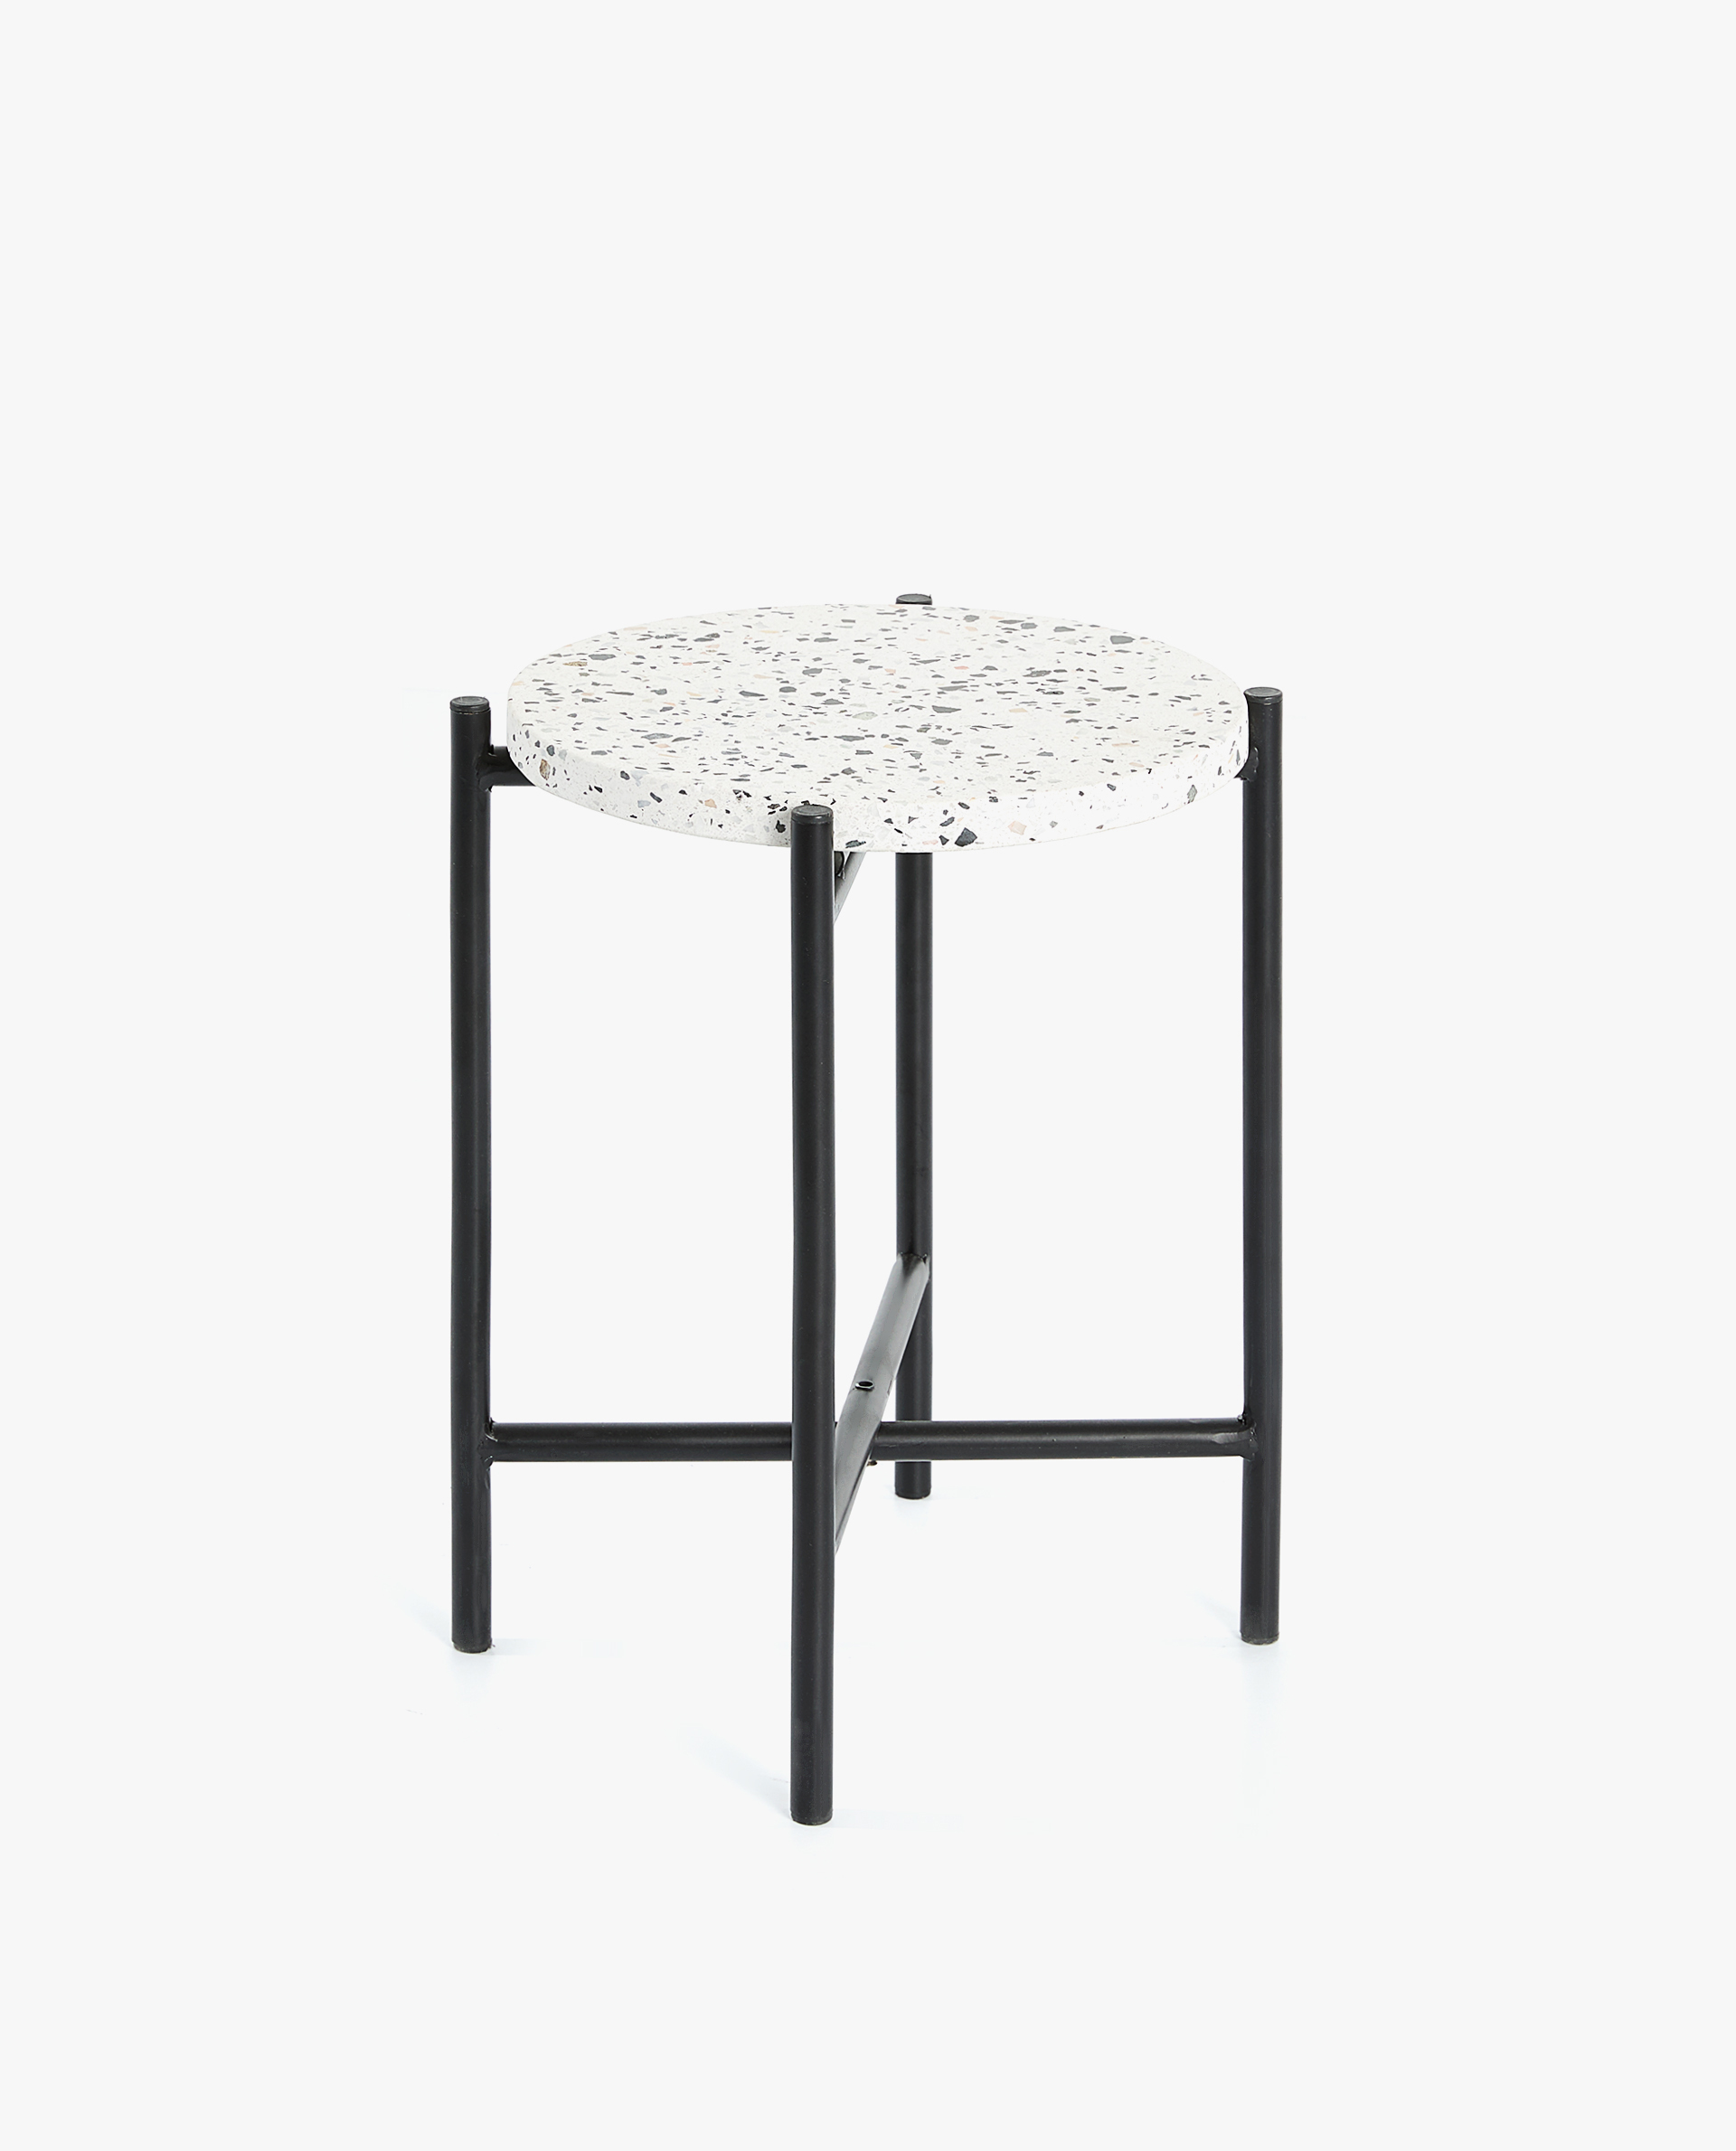 Terrazzo Table With Metallic Structure